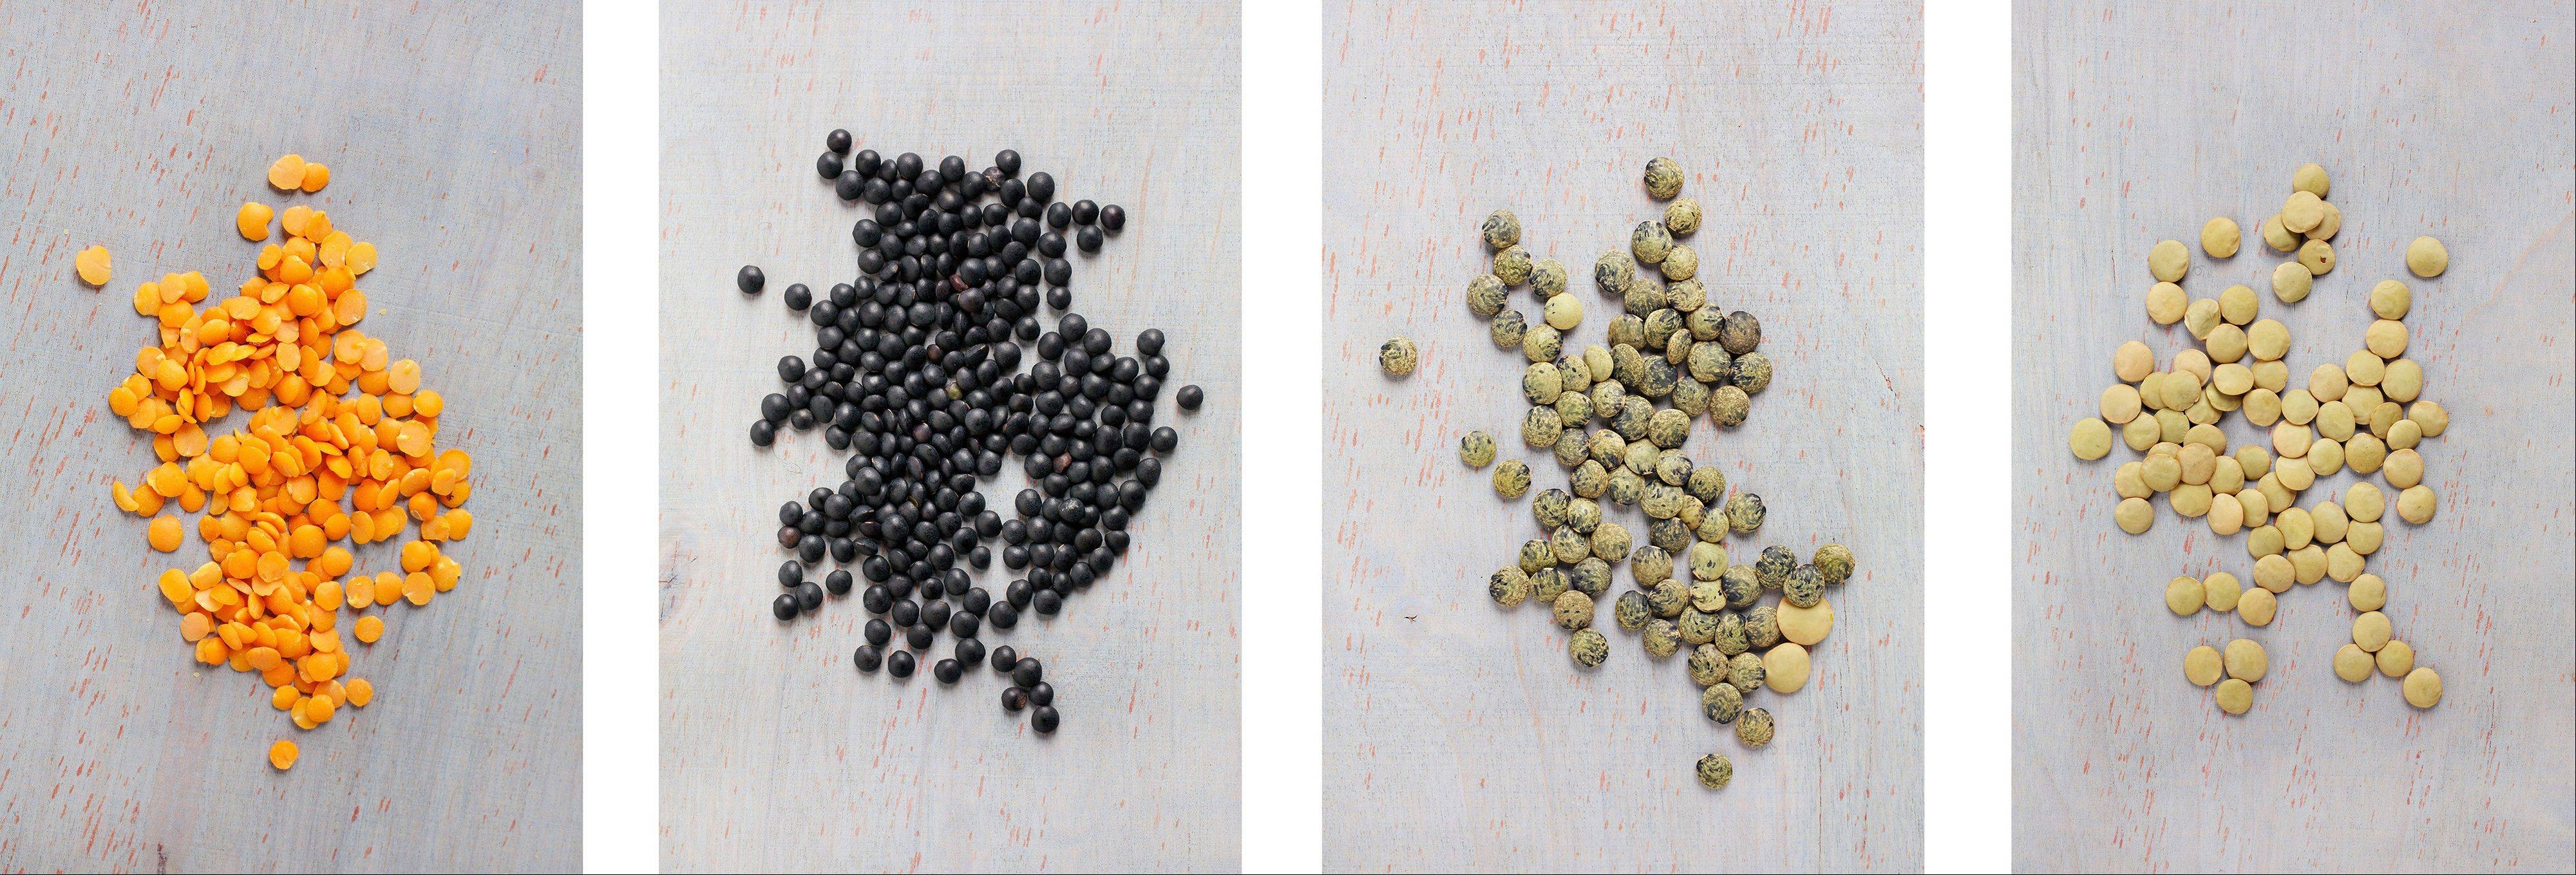 Lentils have culinary uses way beyond soups and stews